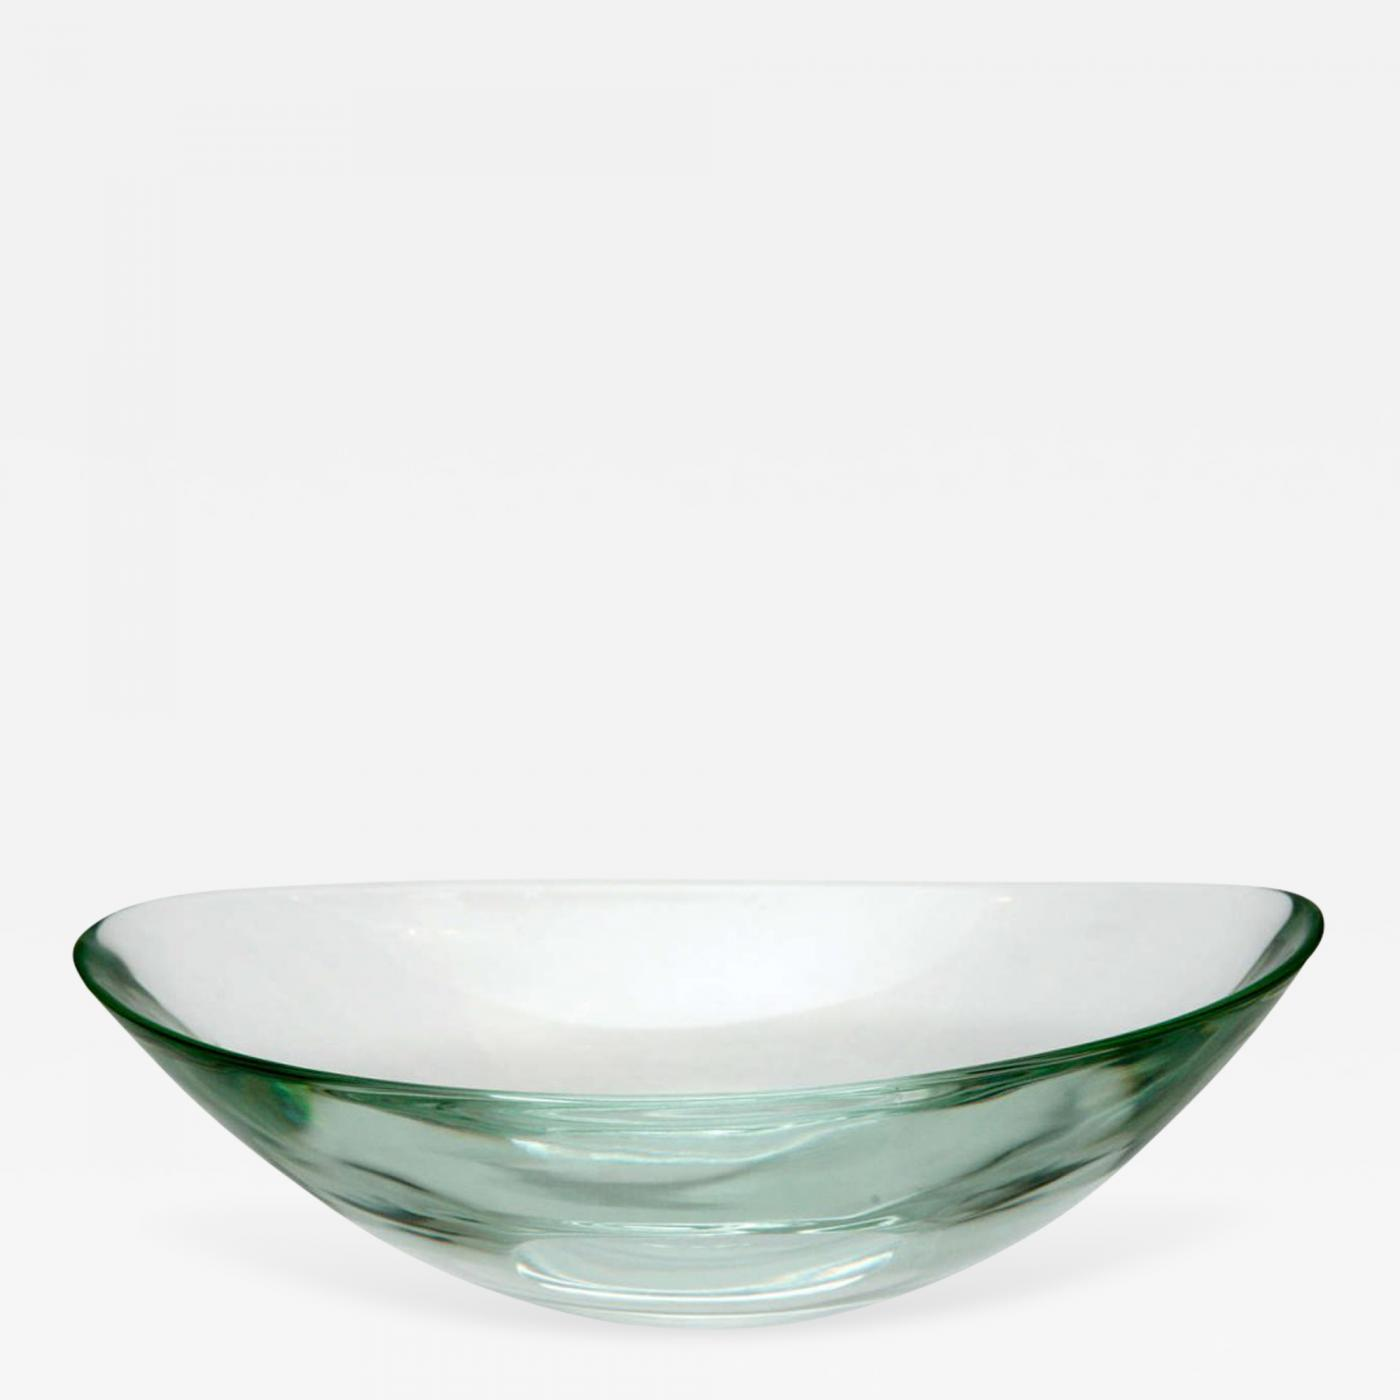 Decorative Glass Bowls Fontana Arte Oval Glass Bowl By Fontana Arte